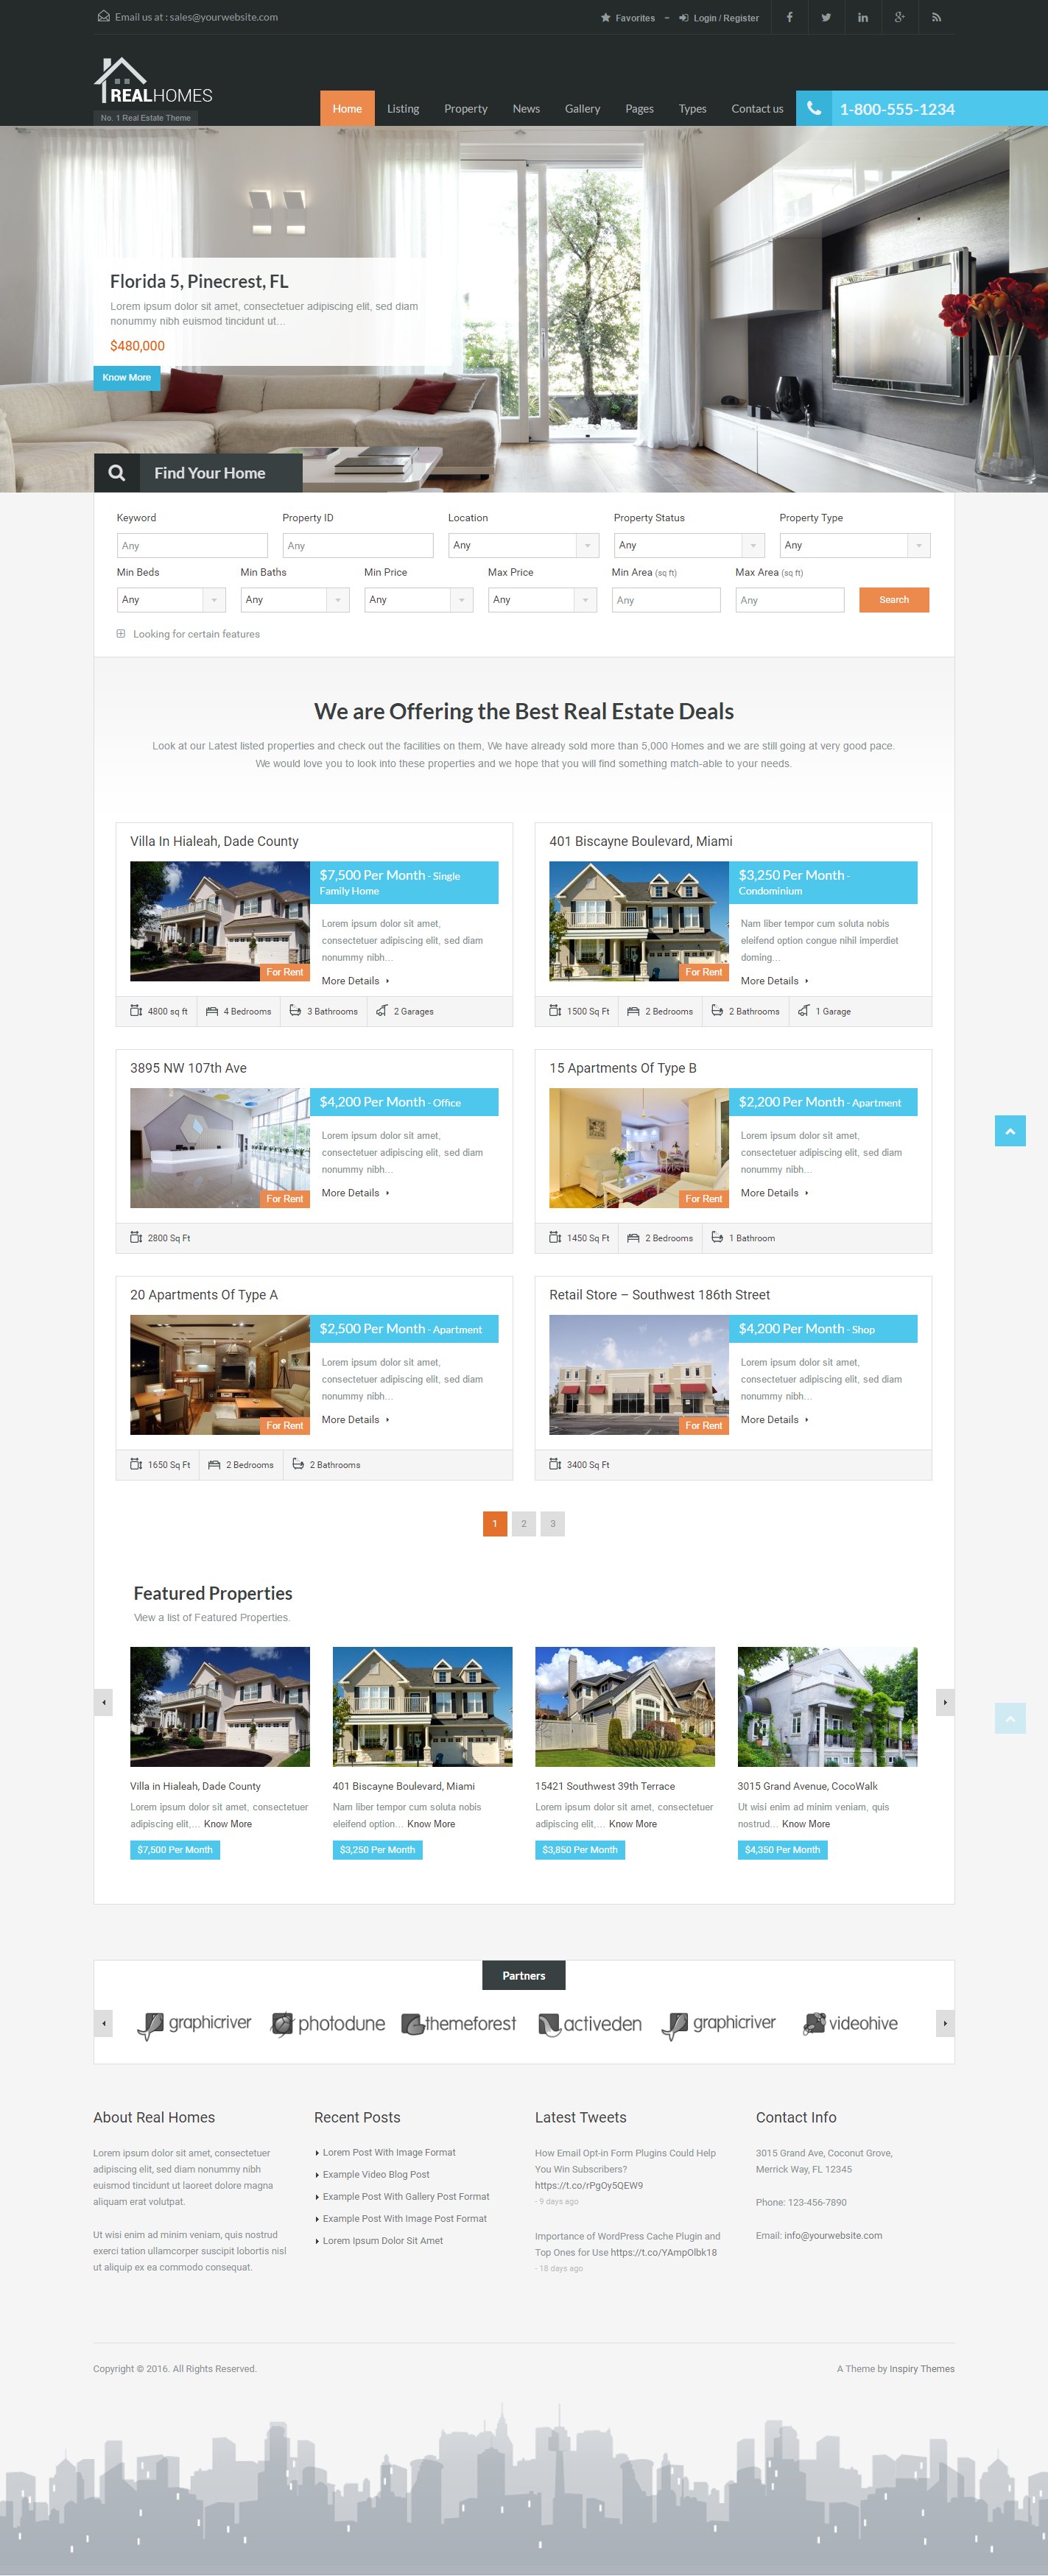 Real Homes is a premium WordPress theme for real estate websites. It has a purpose oriented design and it comes loaded with tons of useful features. Some of the main features are Advanced properties search, Google map with properties markers, Various templates to display properties with customizable options,